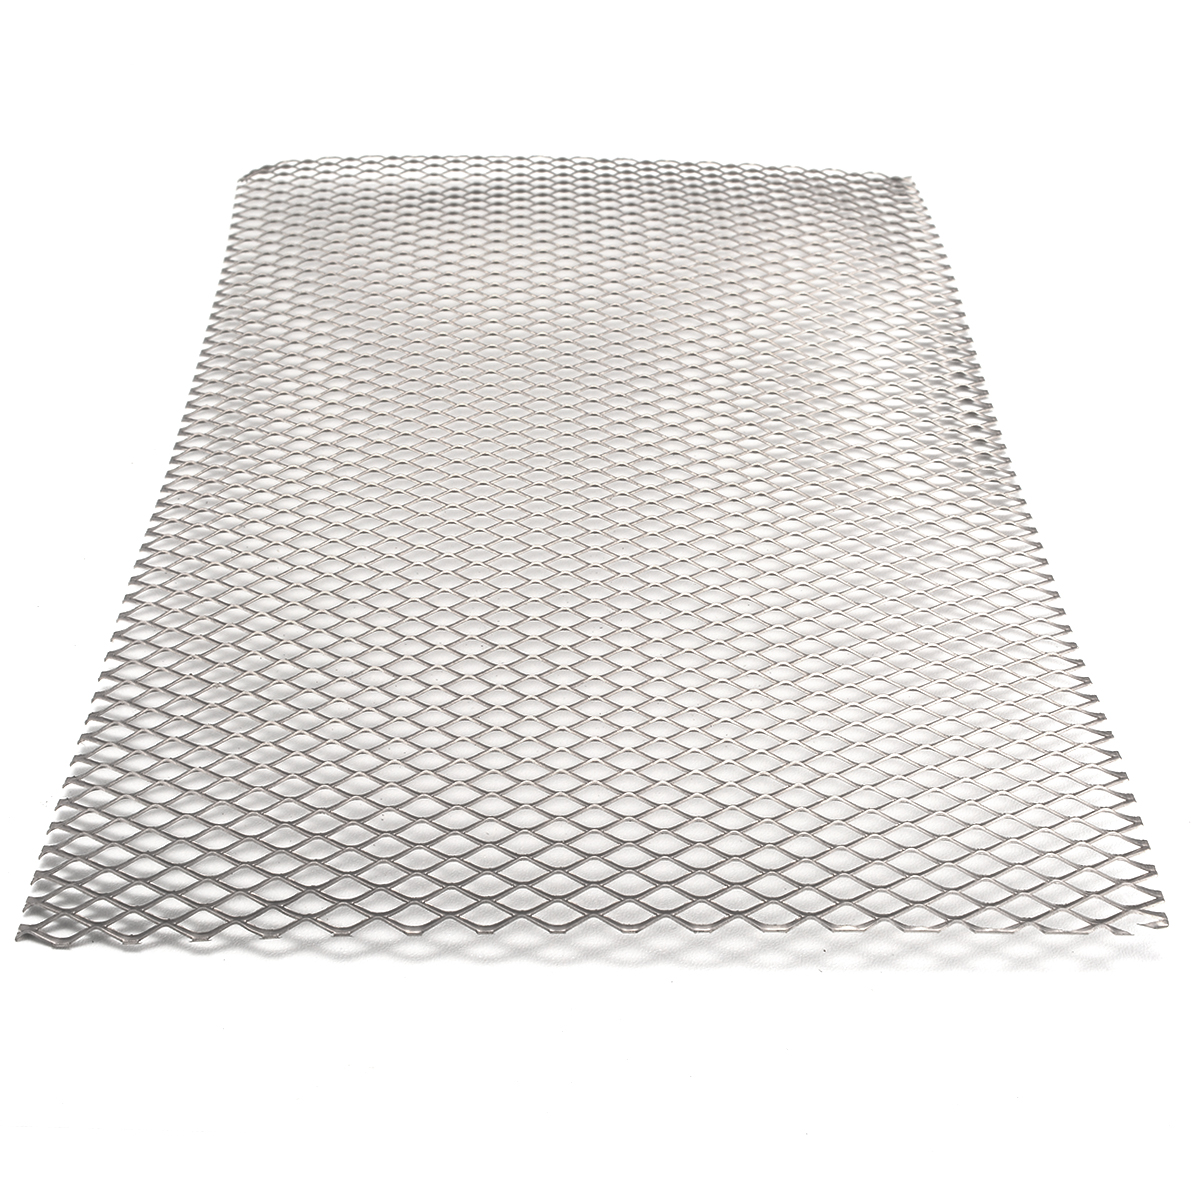 1pc Practical Titanium Mesh Sheet Perforated Plate Expanded Mesh with Corrosion Resistance 200mmx300mmx0.5mm1pc Practical Titanium Mesh Sheet Perforated Plate Expanded Mesh with Corrosion Resistance 200mmx300mmx0.5mm